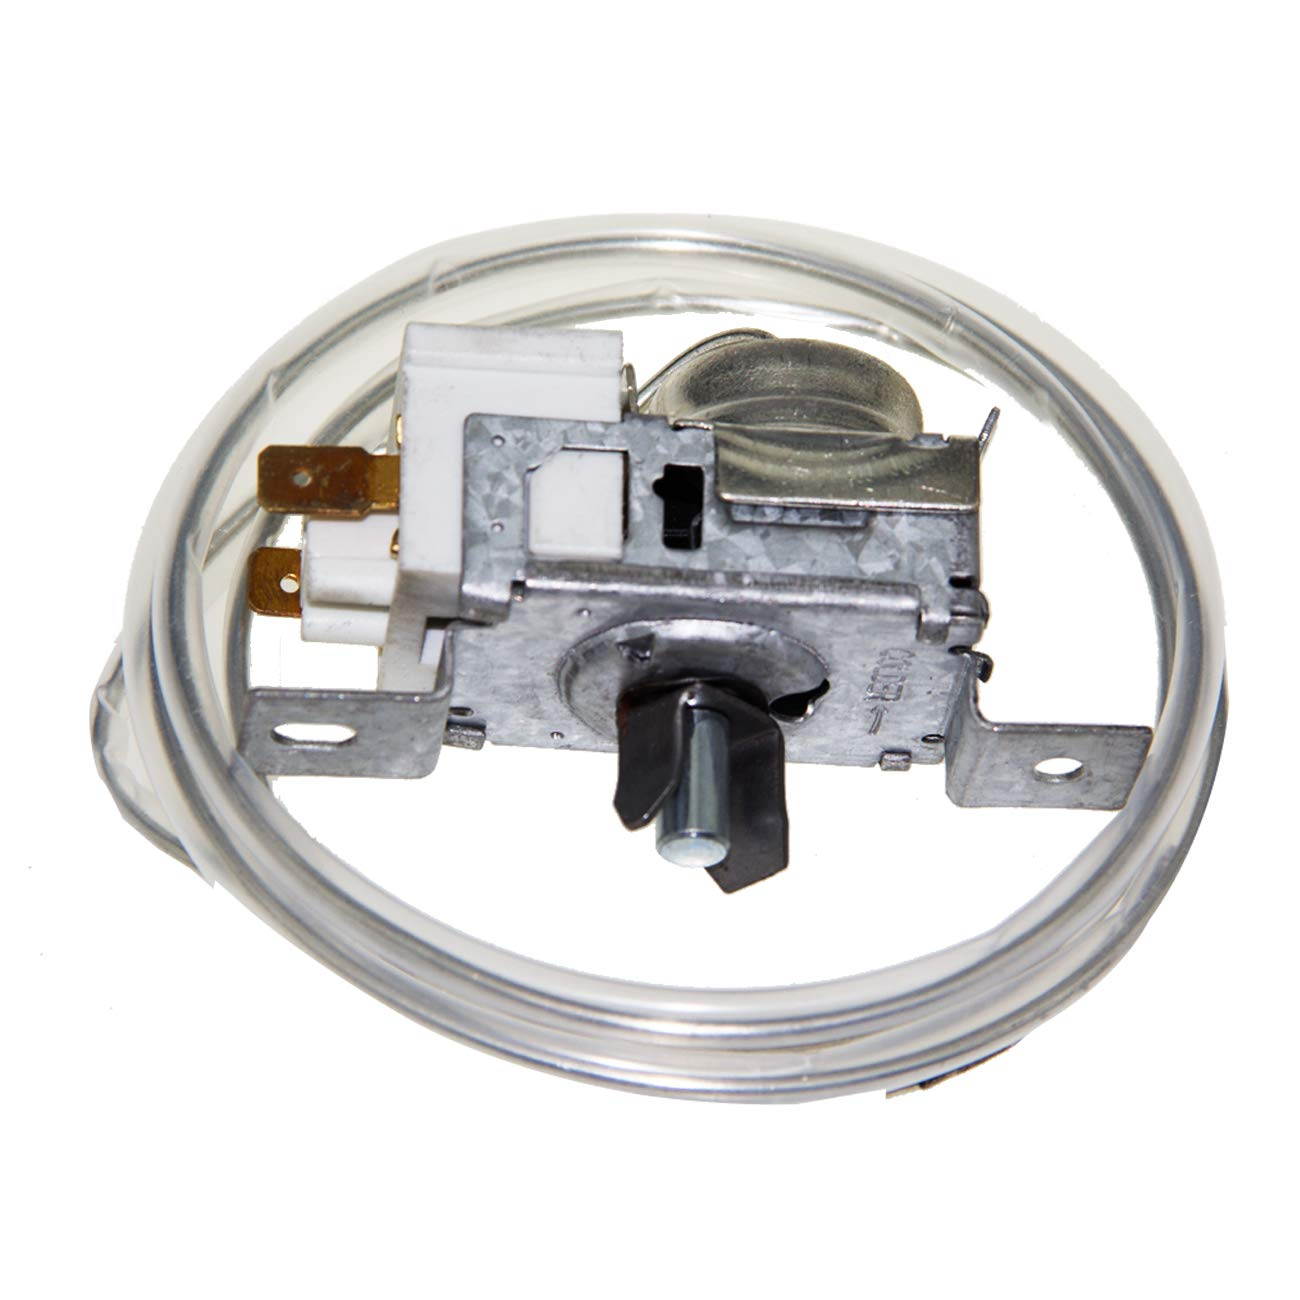 2198202 Refrigerator Cold Control for Whirlpool and Sears 2161284, WP2198202VP, WP2198202